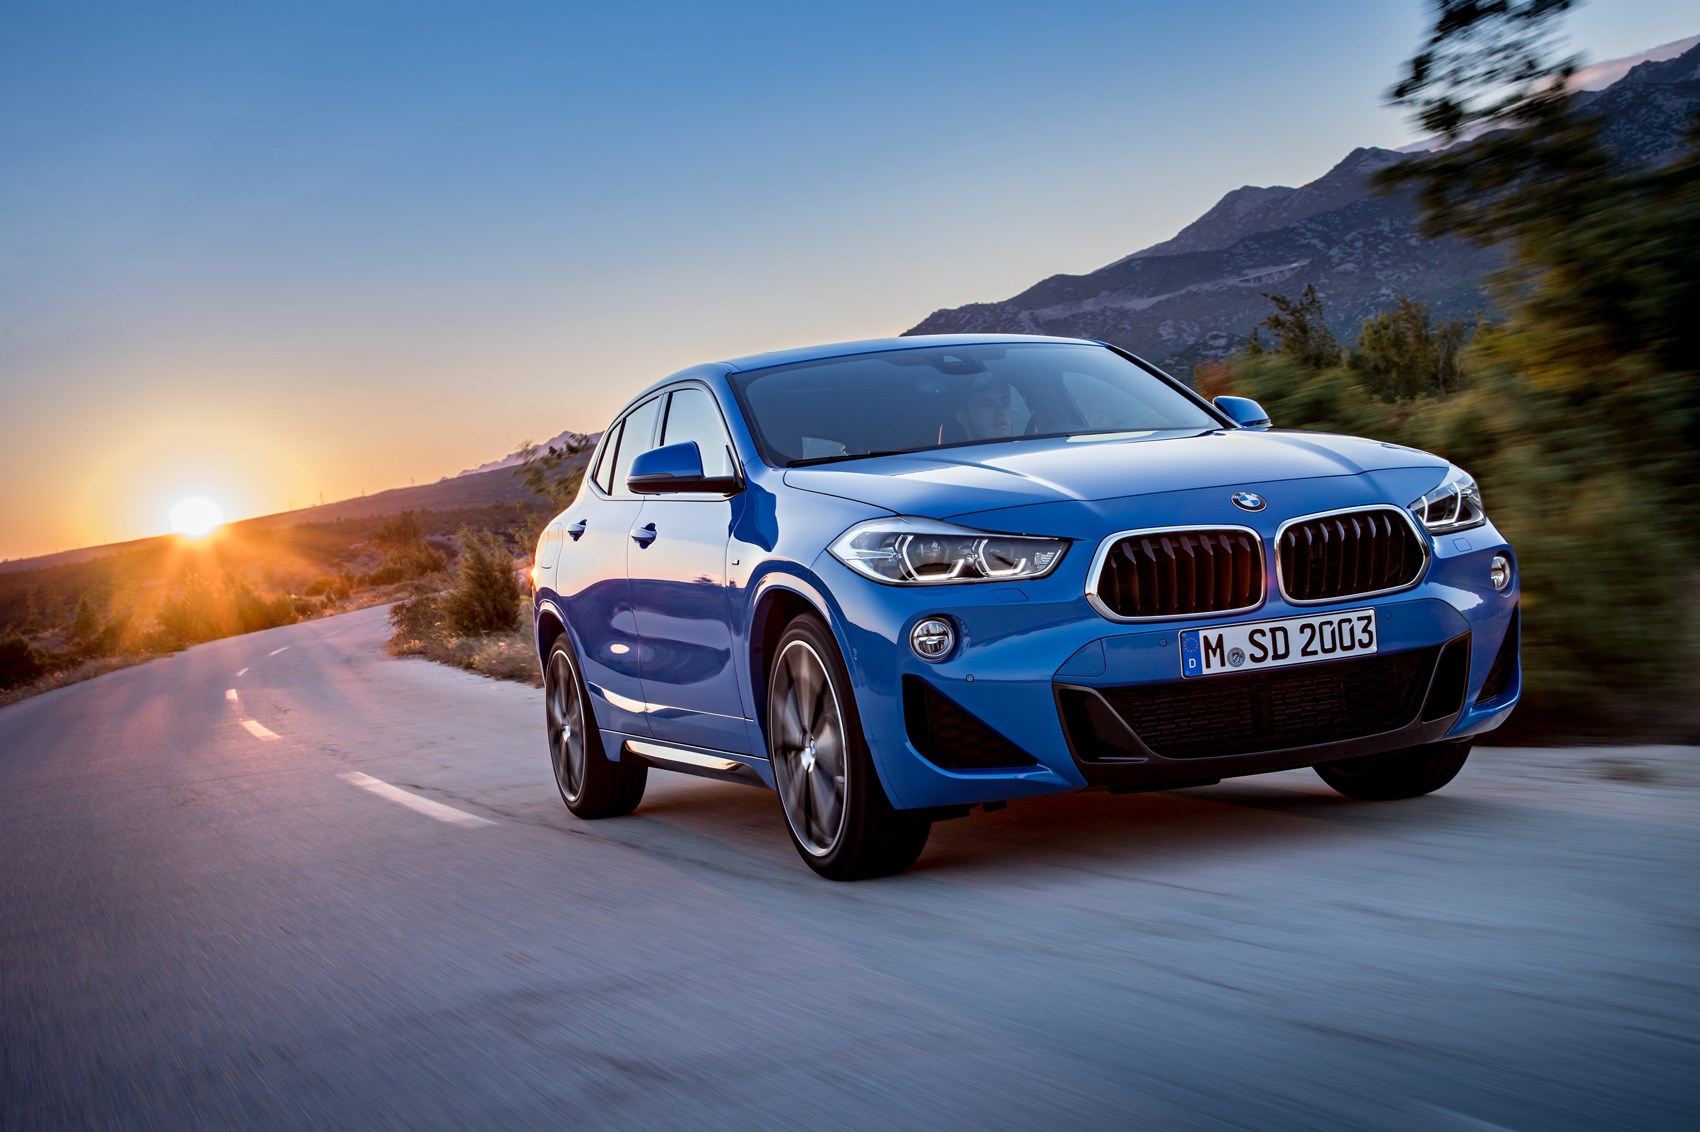 Dodge Latest Models >> BMW X2 SUV: new crossover dubbed 'the cool X' revealed by CAR Magazine